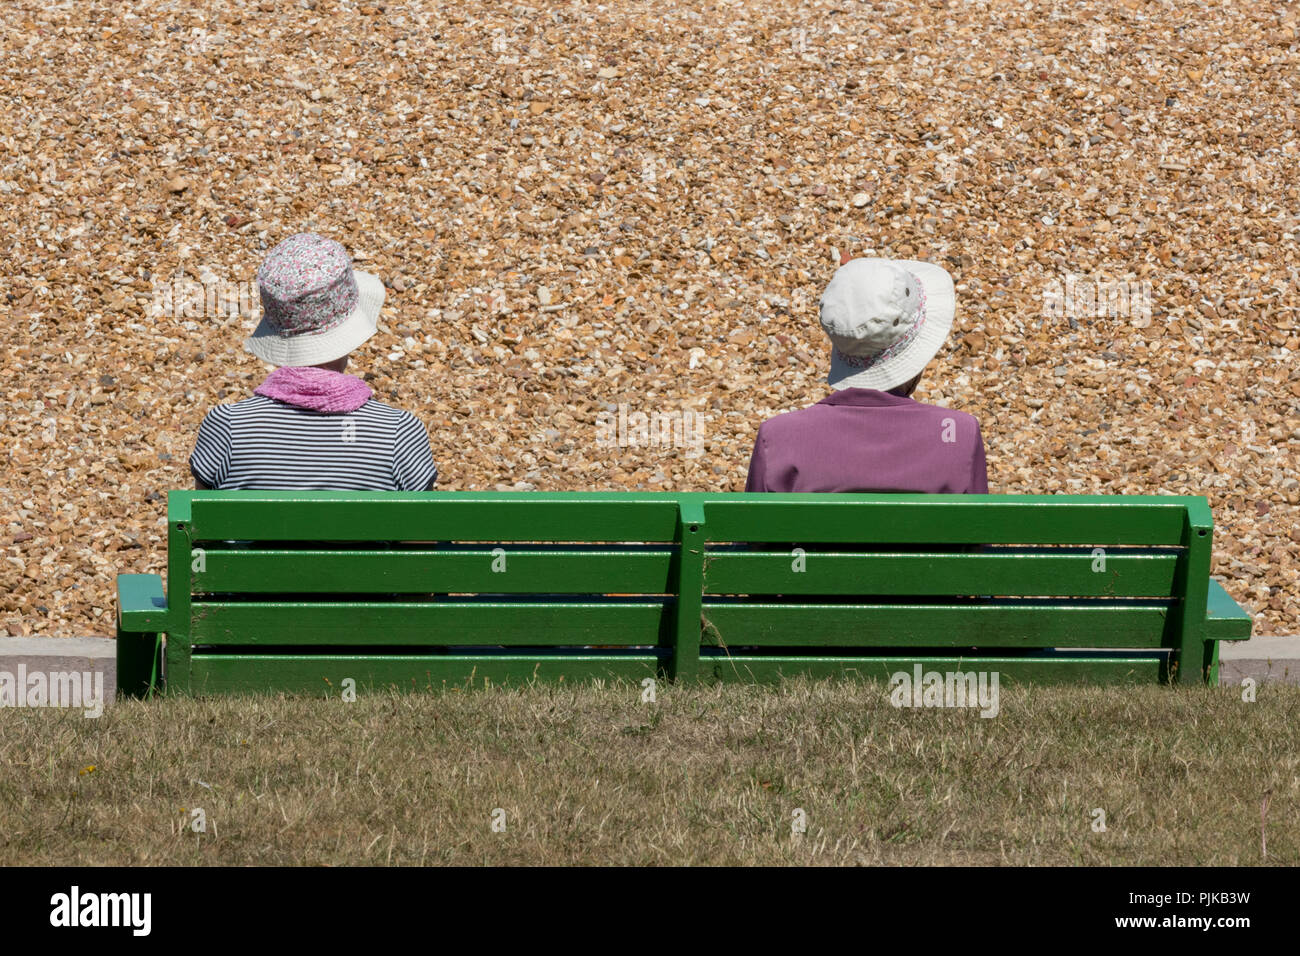 two elderly people or a retired couple sitting on a green painted park bench at the seaside in cowes on the isle of wight. retired couple at coast. - Stock Image